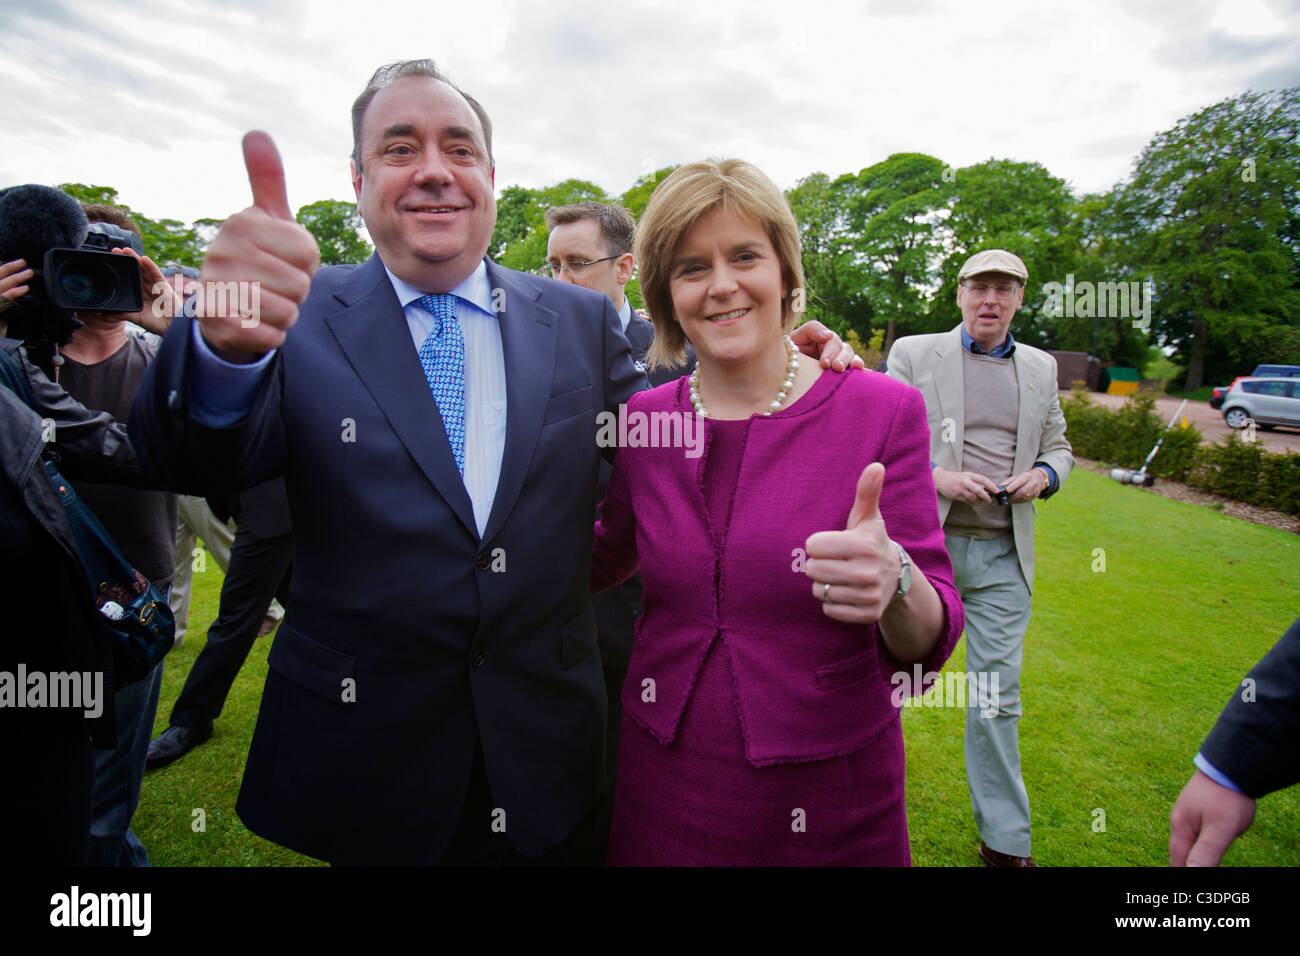 Alex Salmond, leader of the Scottish National Party (SNP )with Nicola Sturgeon - Stock Image